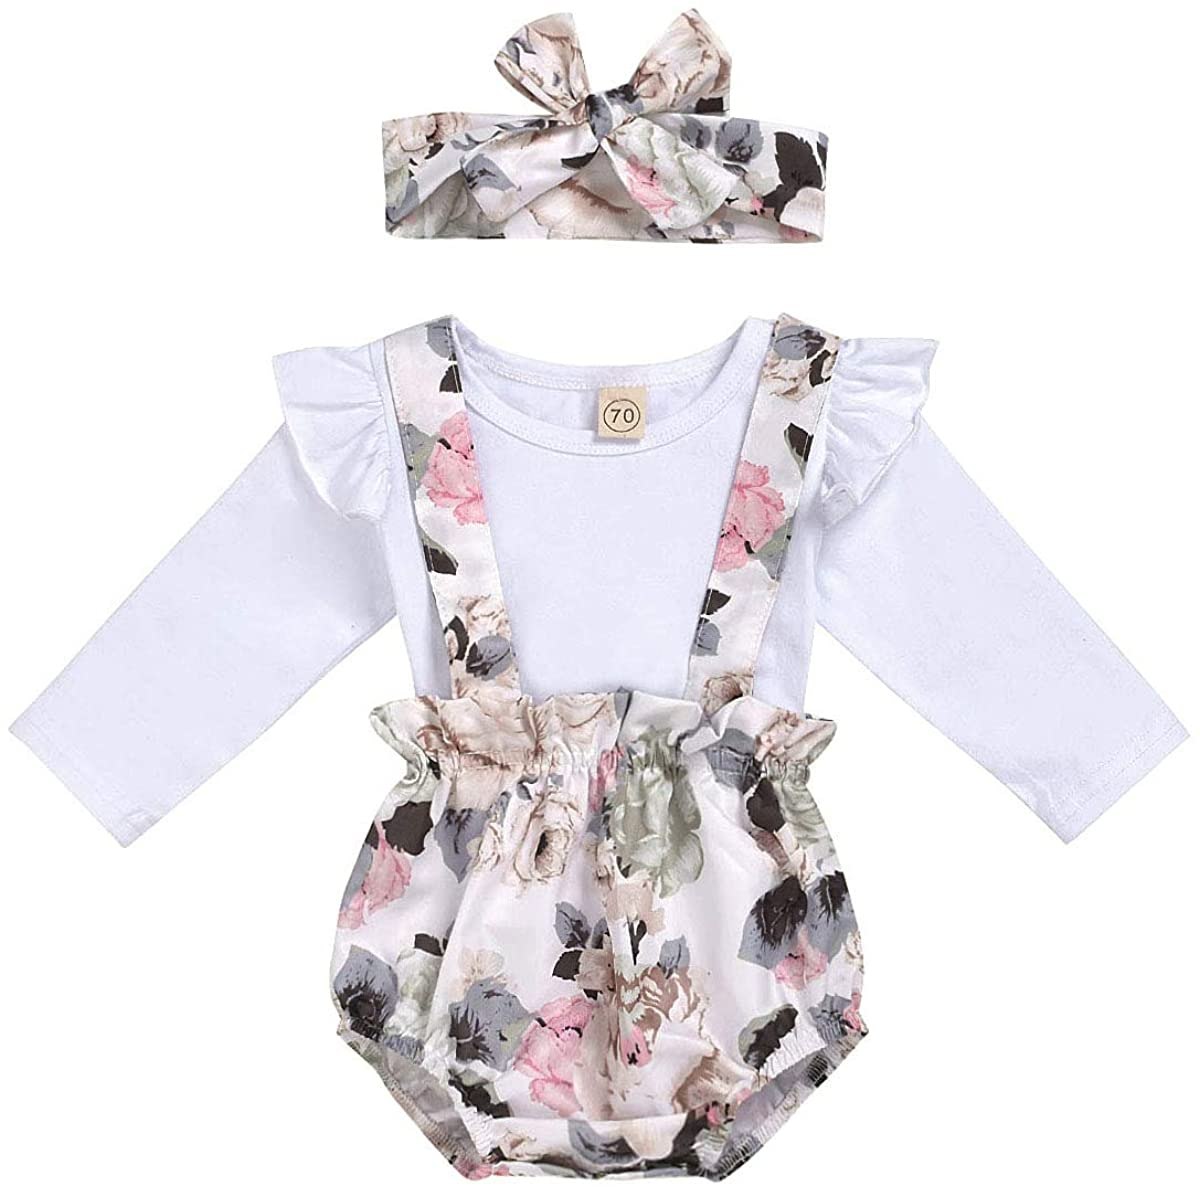 Kids NewbornBaby Girls Fall Outfits Long Sleeve Romper Bodysuit+Ruffle Floral Strap Pants Winter Clothes Set